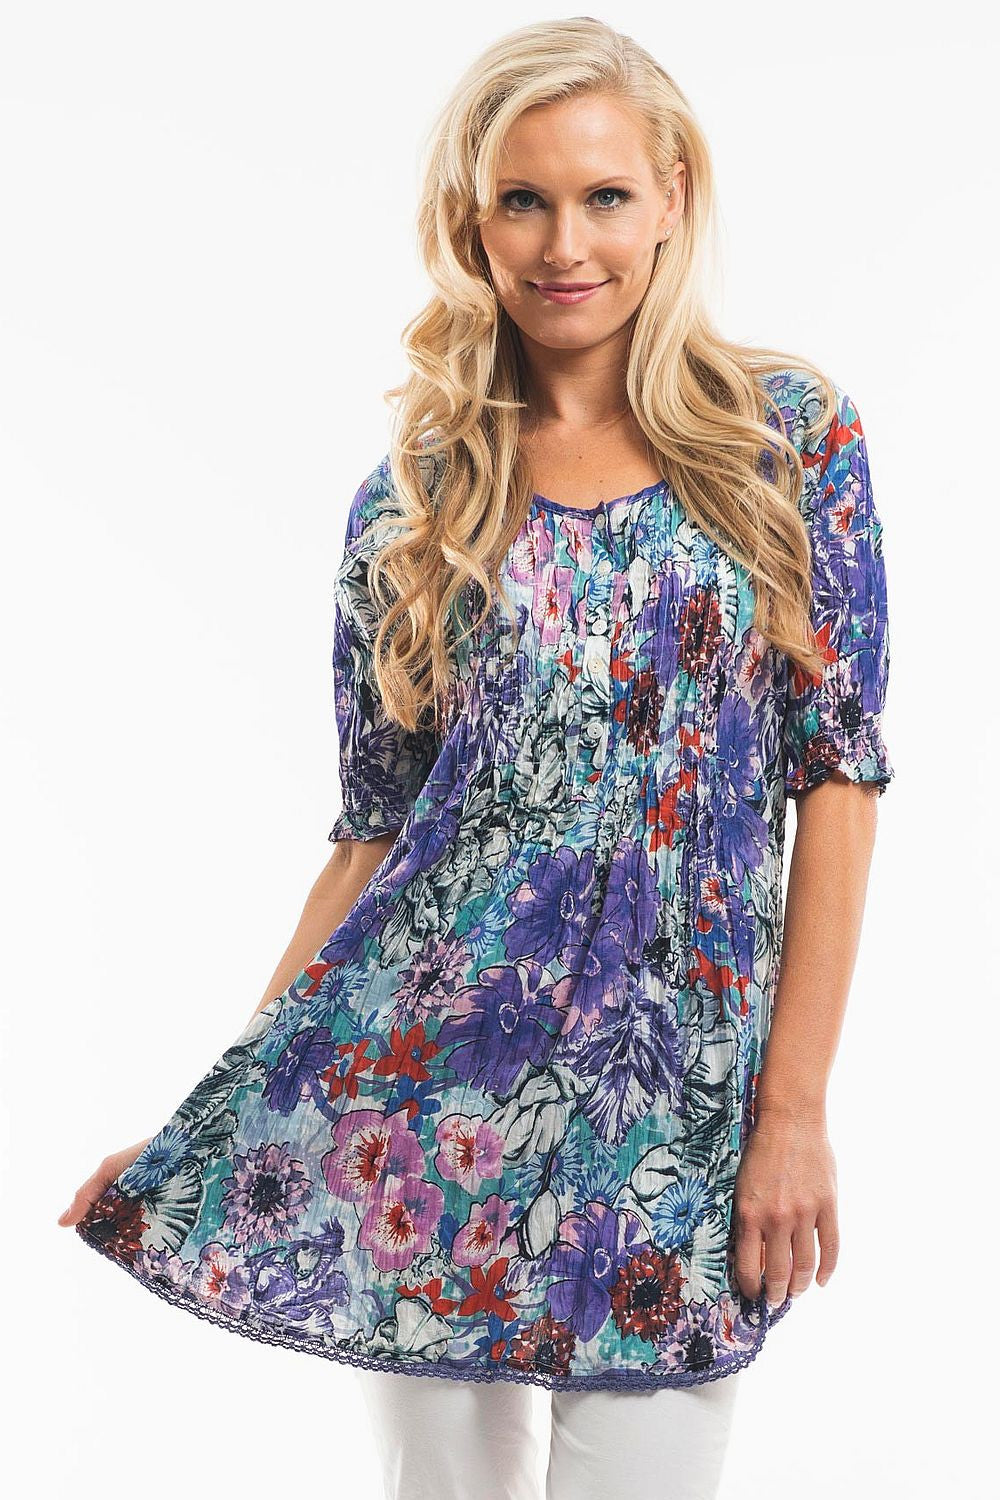 Blue Floral Tunic - at I Love Tunics @ www.ilovetunics.com = Number One! Tunics Destination